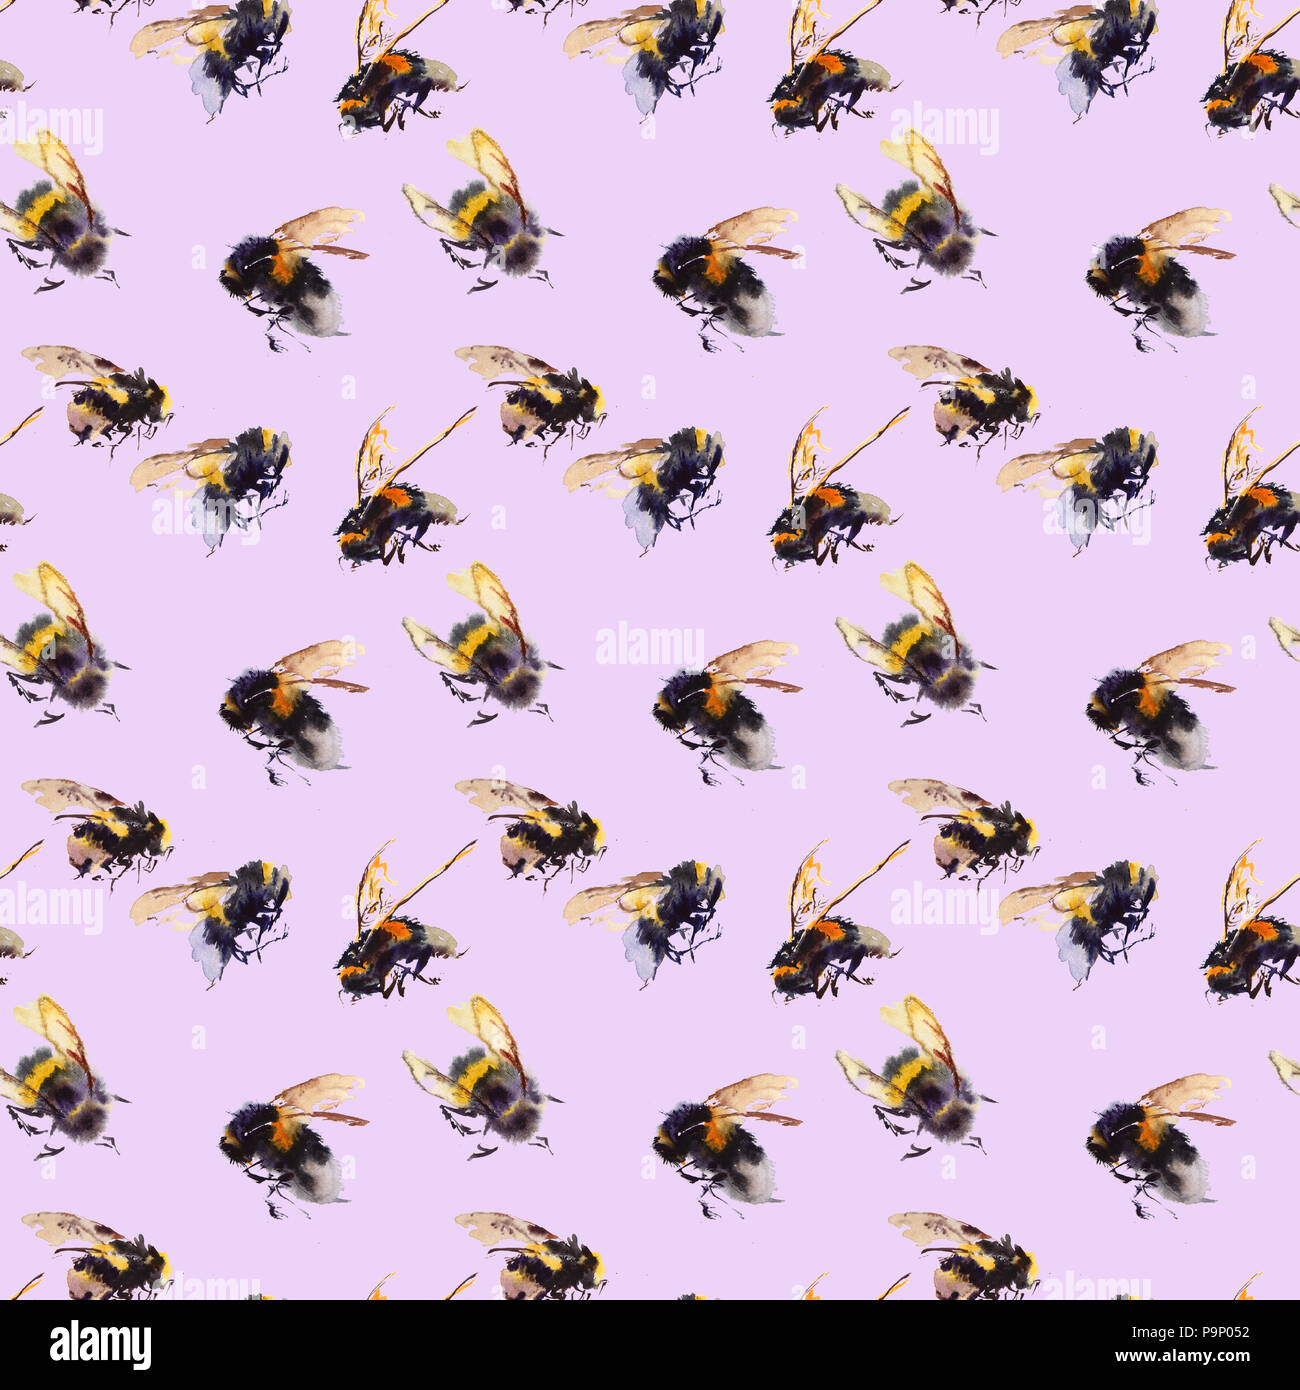 Watercolor bees seamless pattern isolated on white background. hand drawn watercolor illustration - Stock Image